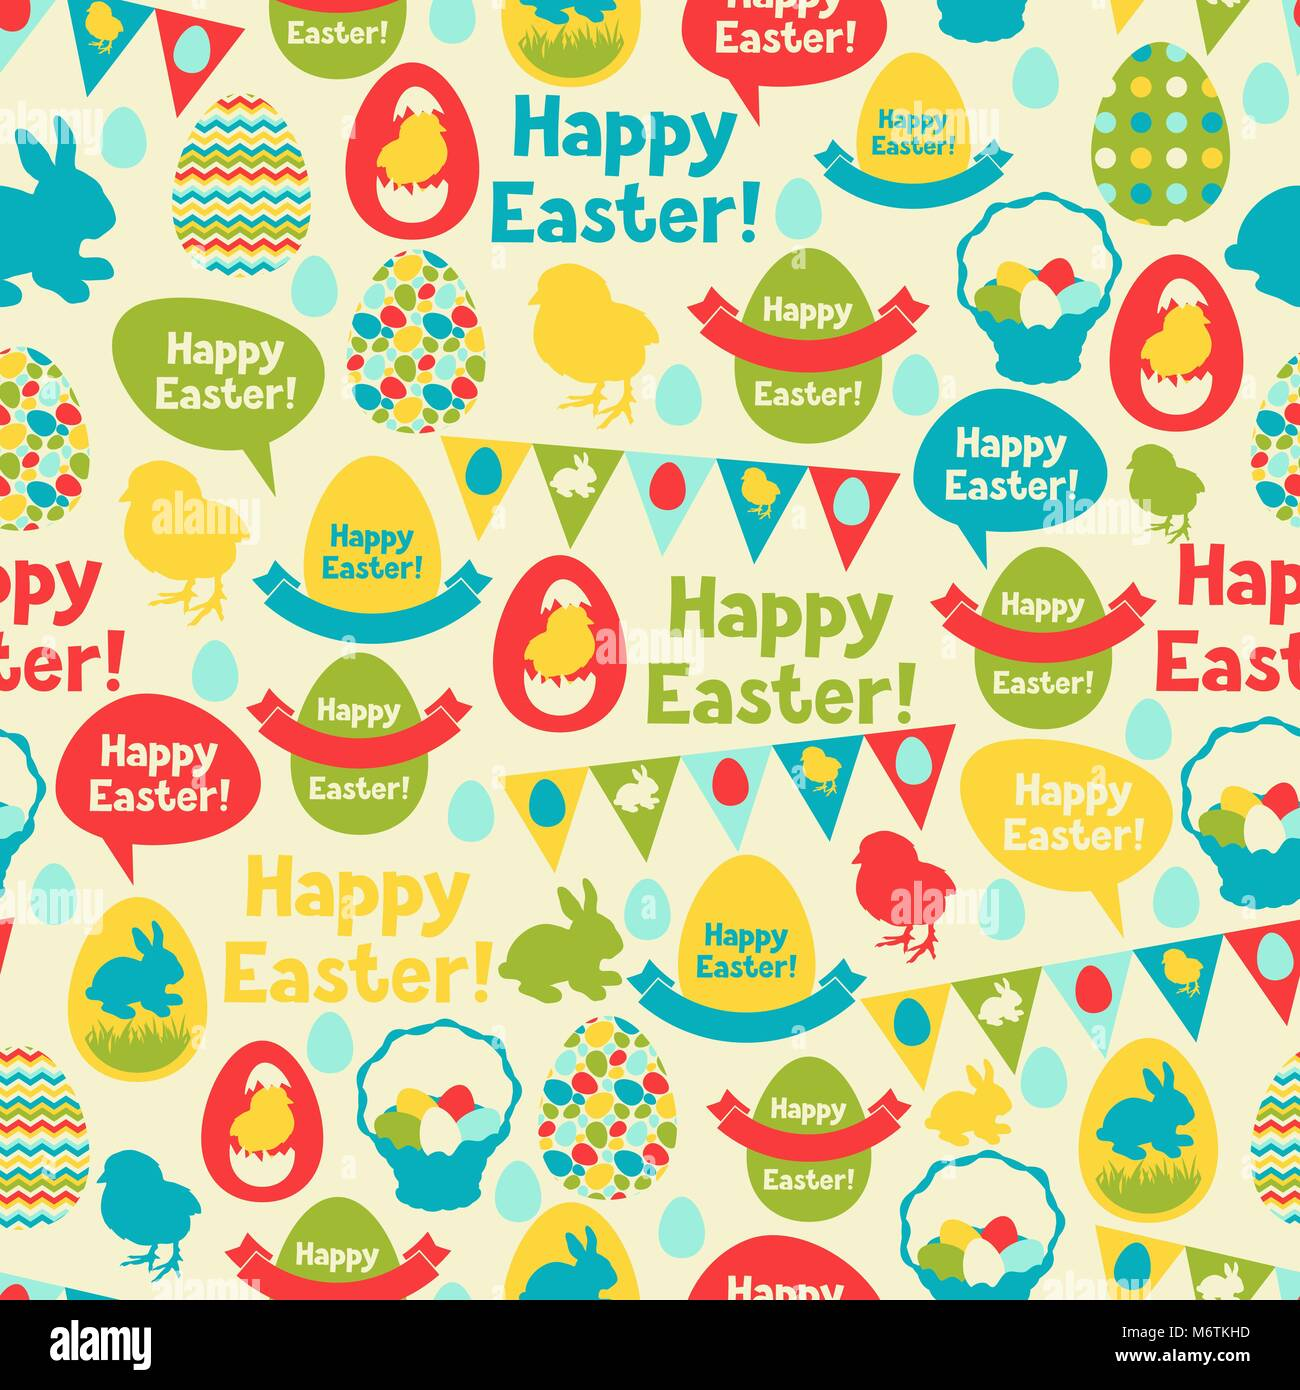 Happy Easter seamless pattern - Stock Image